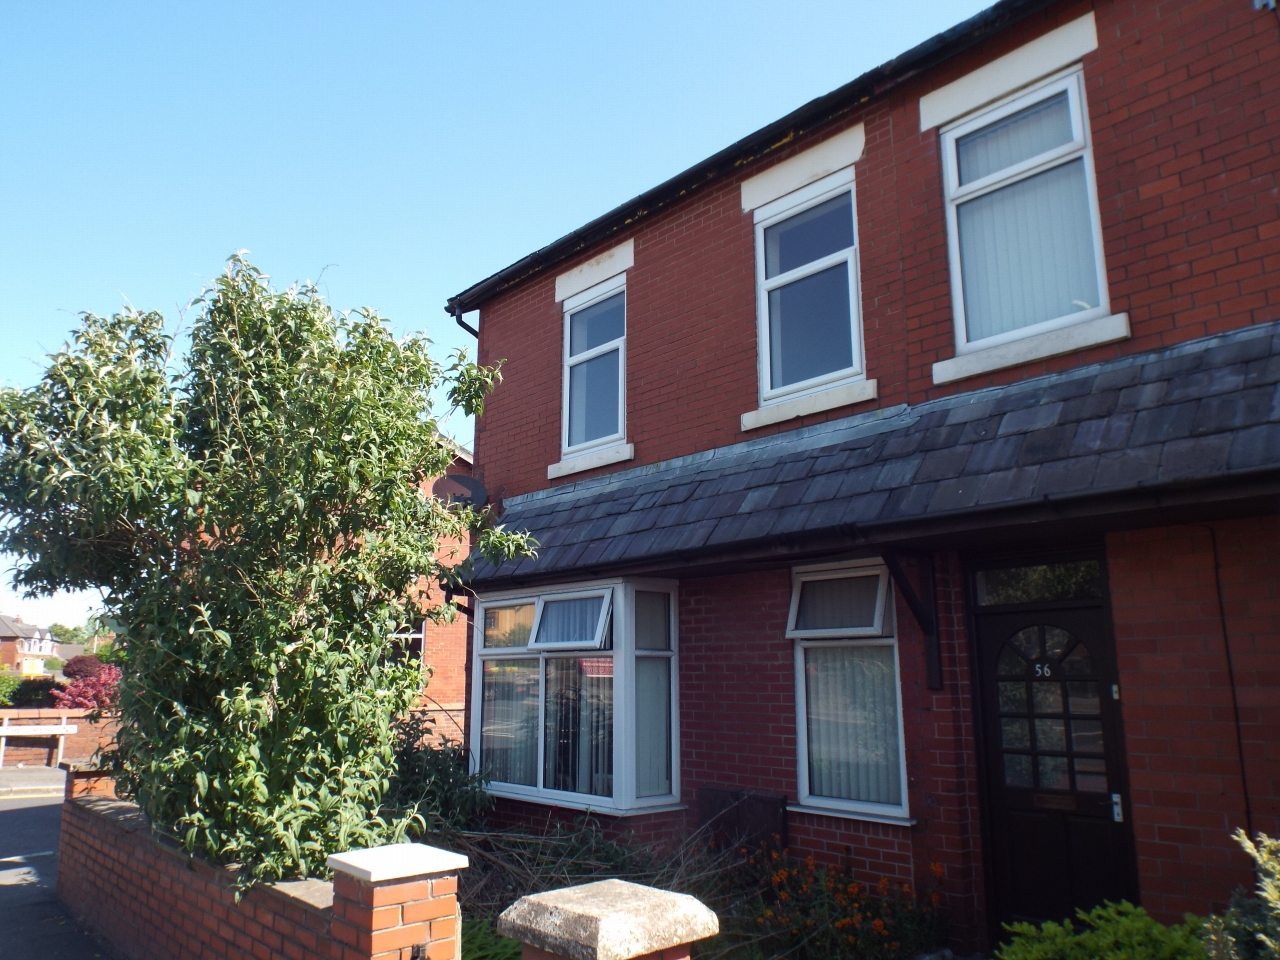 2 bedroom apartment flat/apartment in Chorley - Photograph 1.